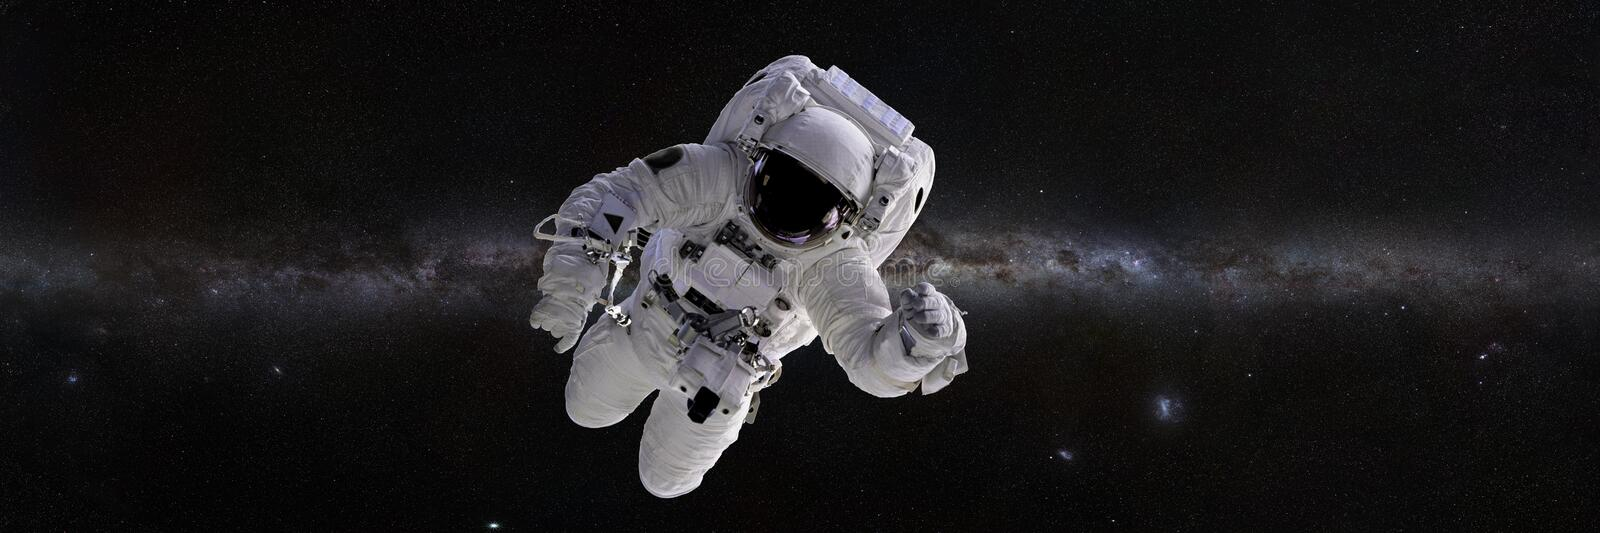 Astronaut in front of the Milky Way galaxy 3d illustration banner, elements of this image are furnished by NASA. Spaceman in outer space, panorama banner space royalty free illustration